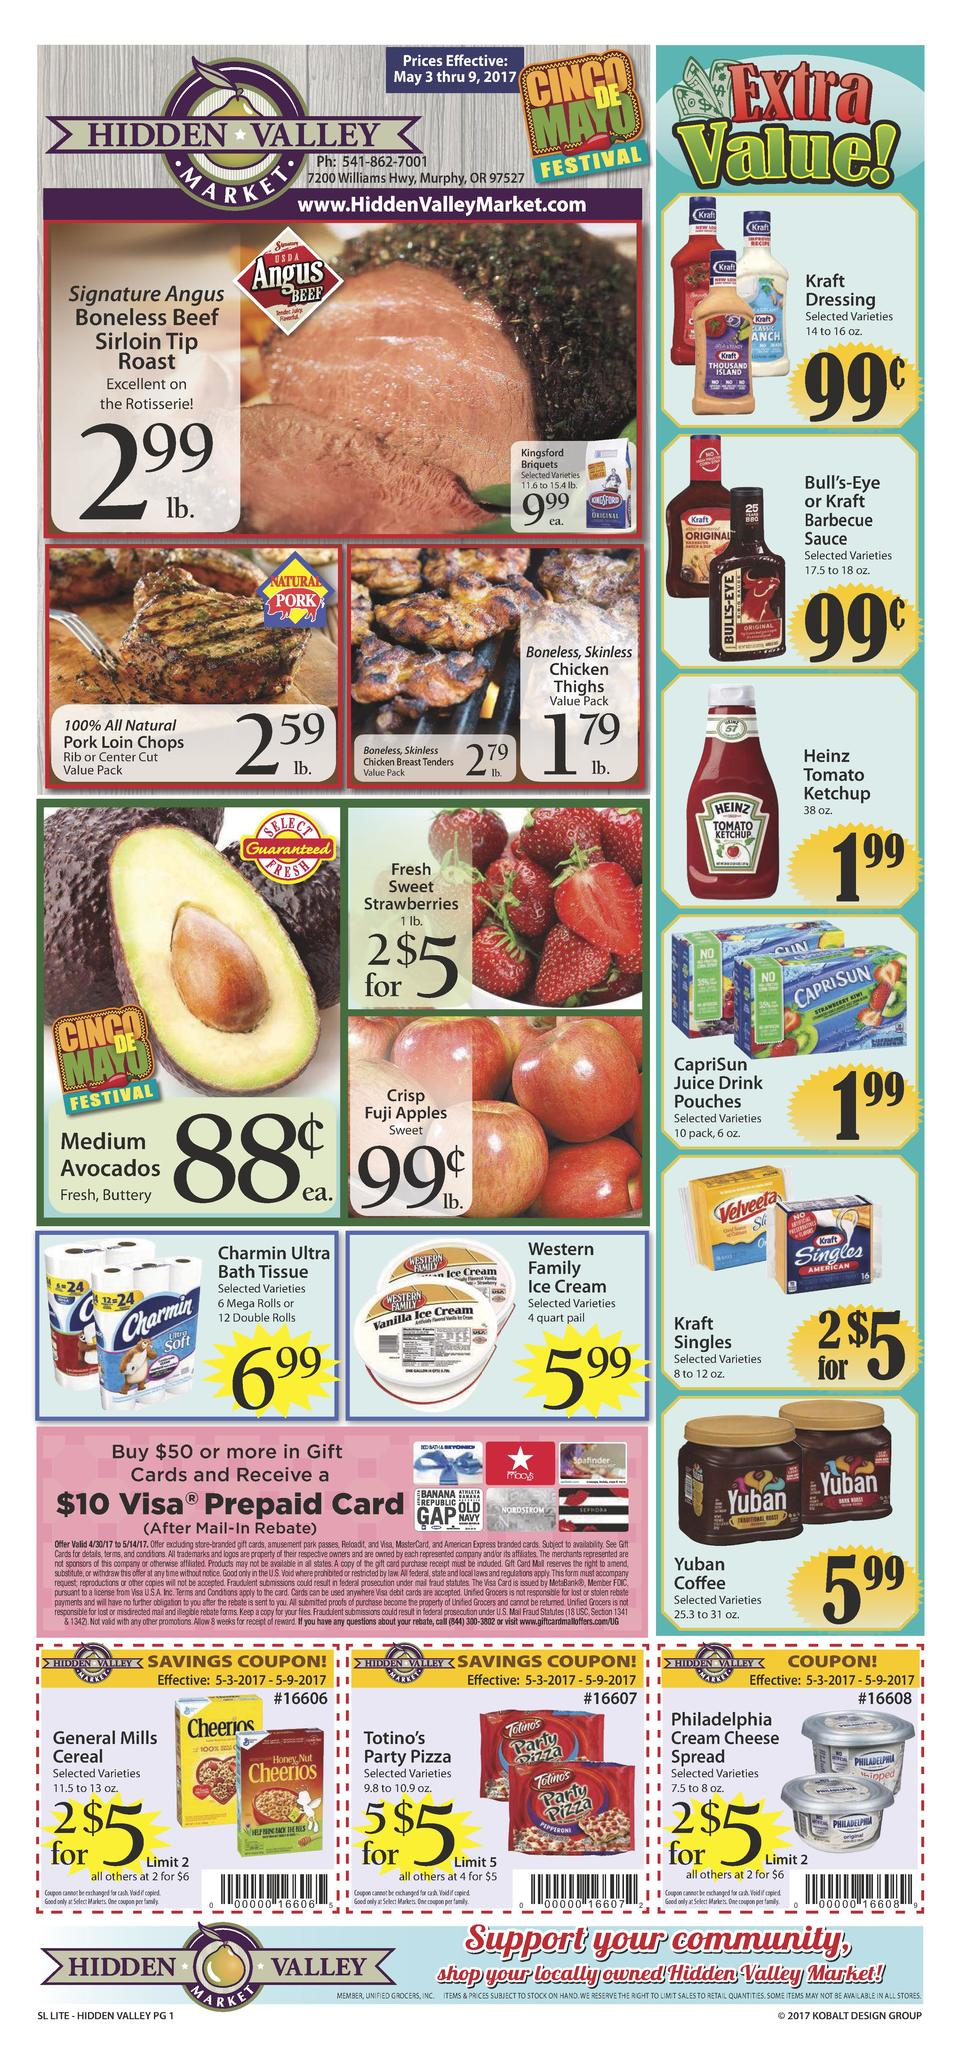 Prices Effective  May 3 thru 9, 2017  Ph  541-862-7001  7200 Williams Hwy, Murphy, OR 97527  www.HiddenValleyMarket.com Kr...